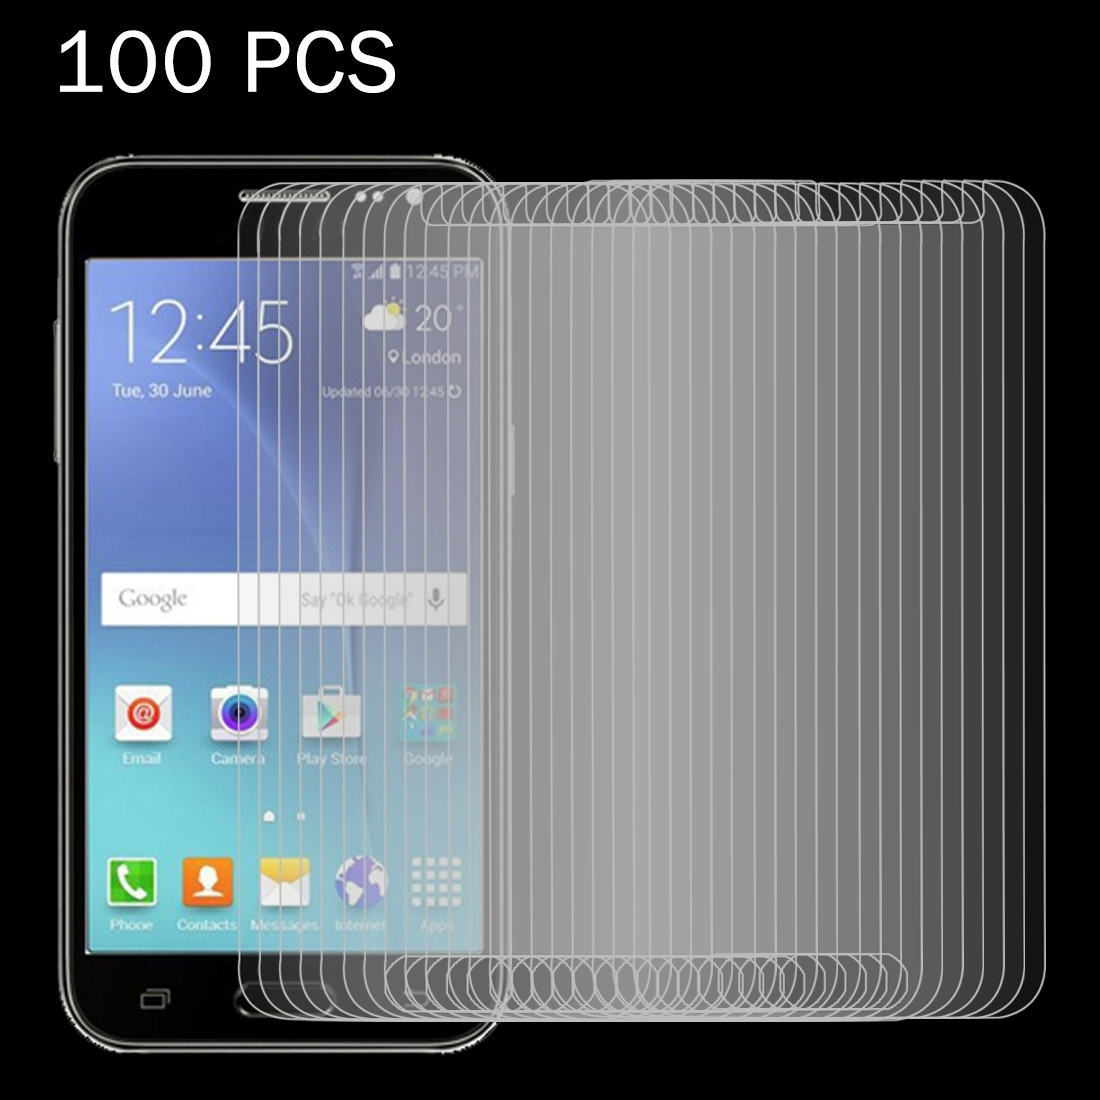 J200 0.26mm 9H Surface Hardness 2.5D Explosion-Proof Tempered Glass Screen Film Anti-Scratch Screen Protector Premium Tempered Glass Screen Film 100 PCS for Galaxy J2